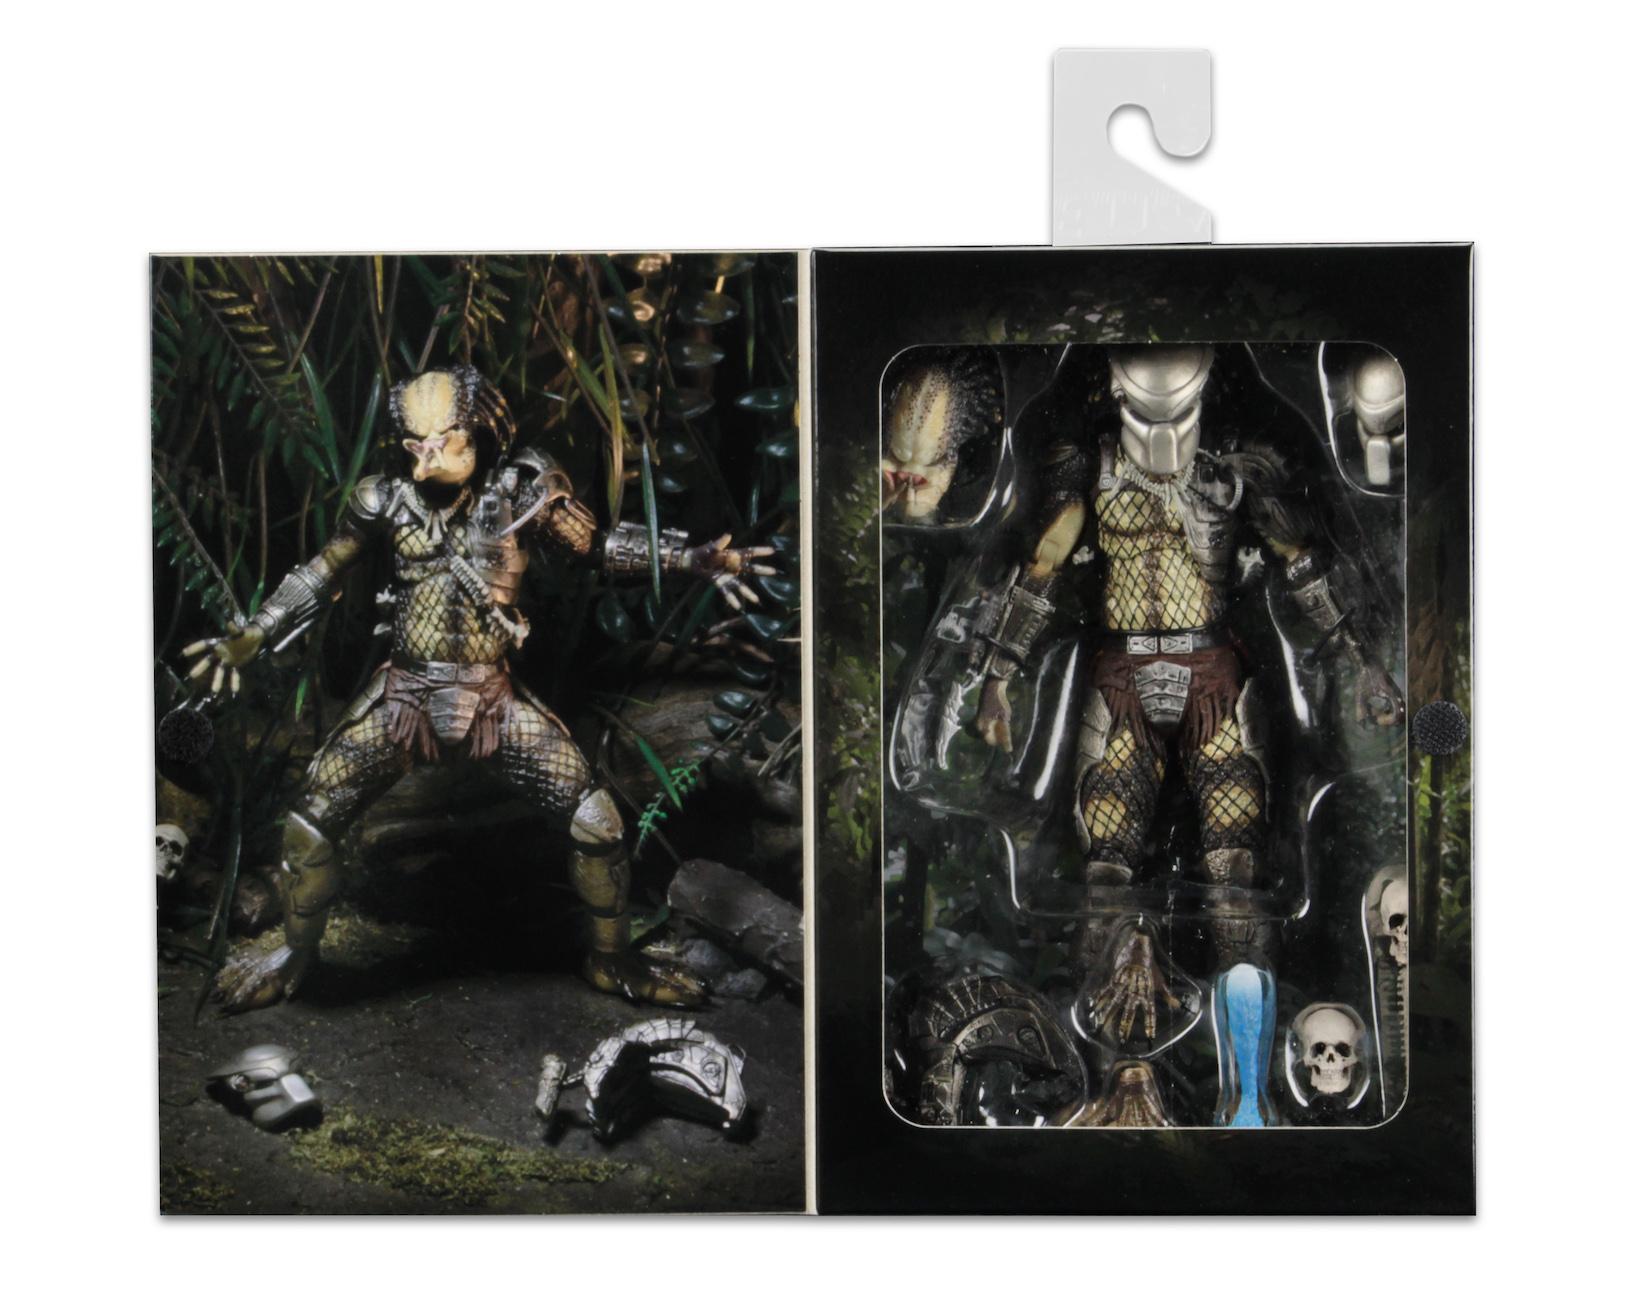 Shipping this week: New Figures from Alien, Predator